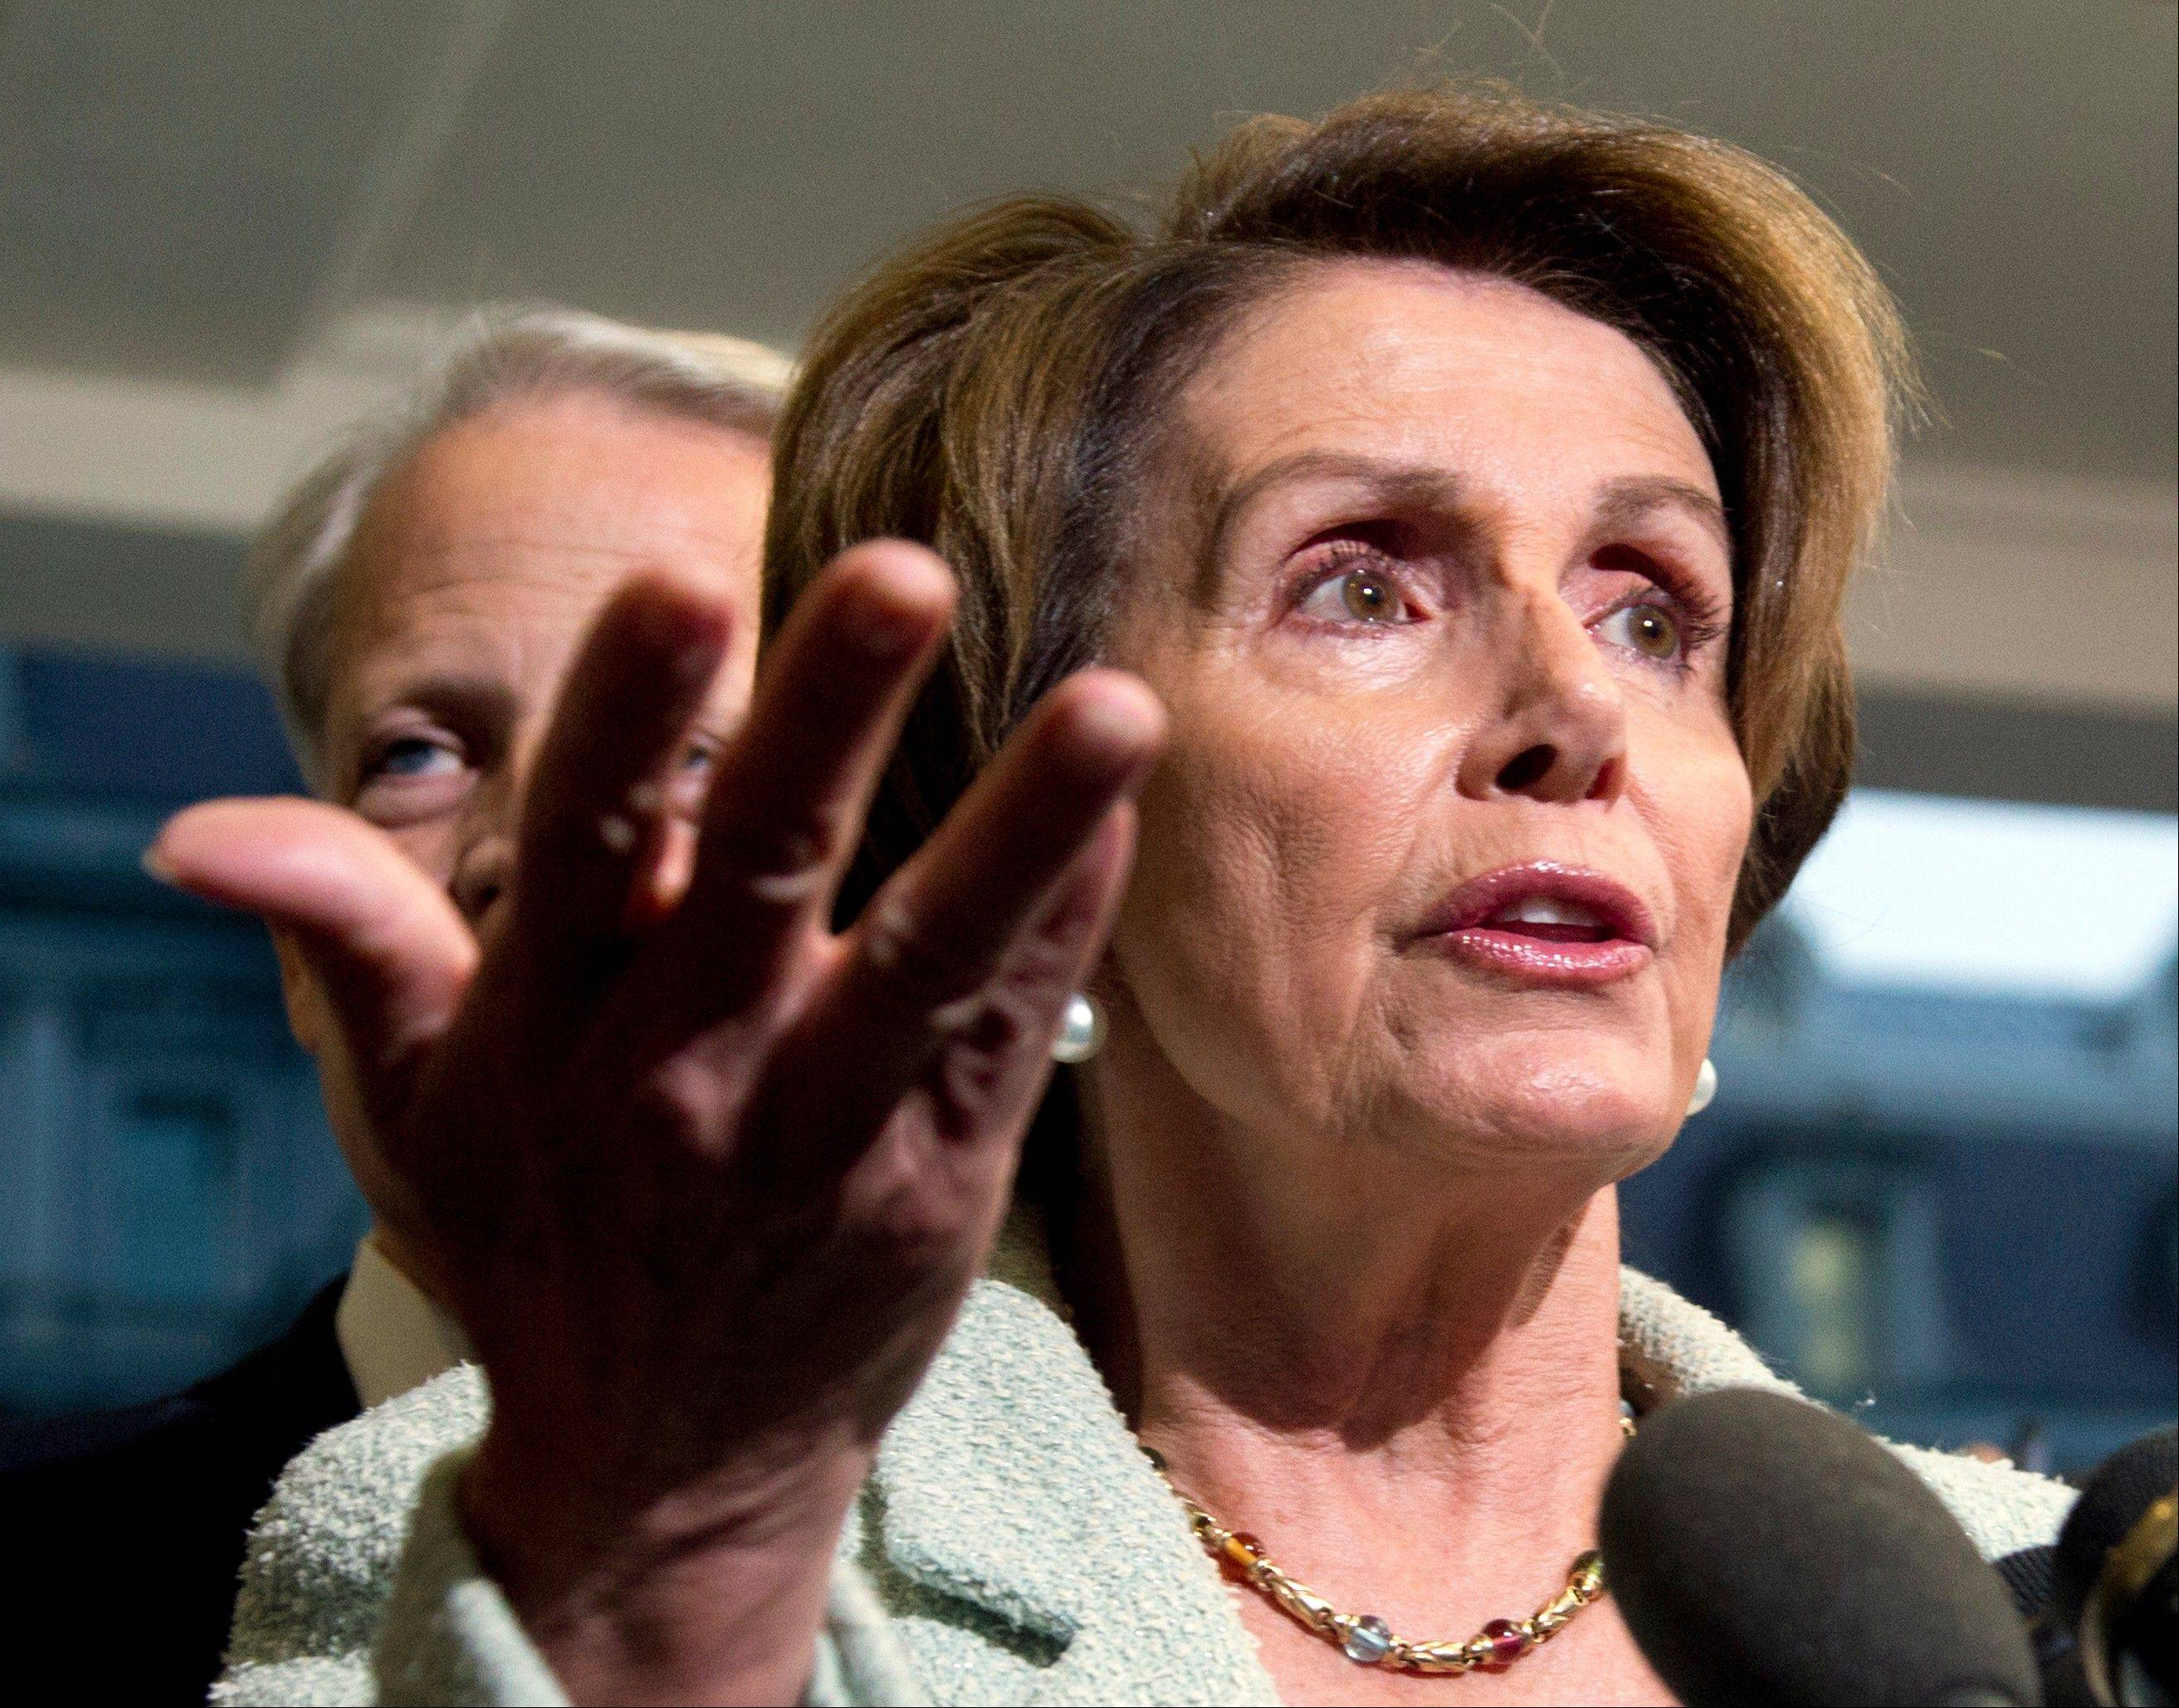 House Minority Leader Nancy Pelosi, D-Calif., with Rep. Steve Israel, D-N.Y., speaks to reporters during a news conference following a meeting with President Barack Obama at the White House in Washington, Wednesday.